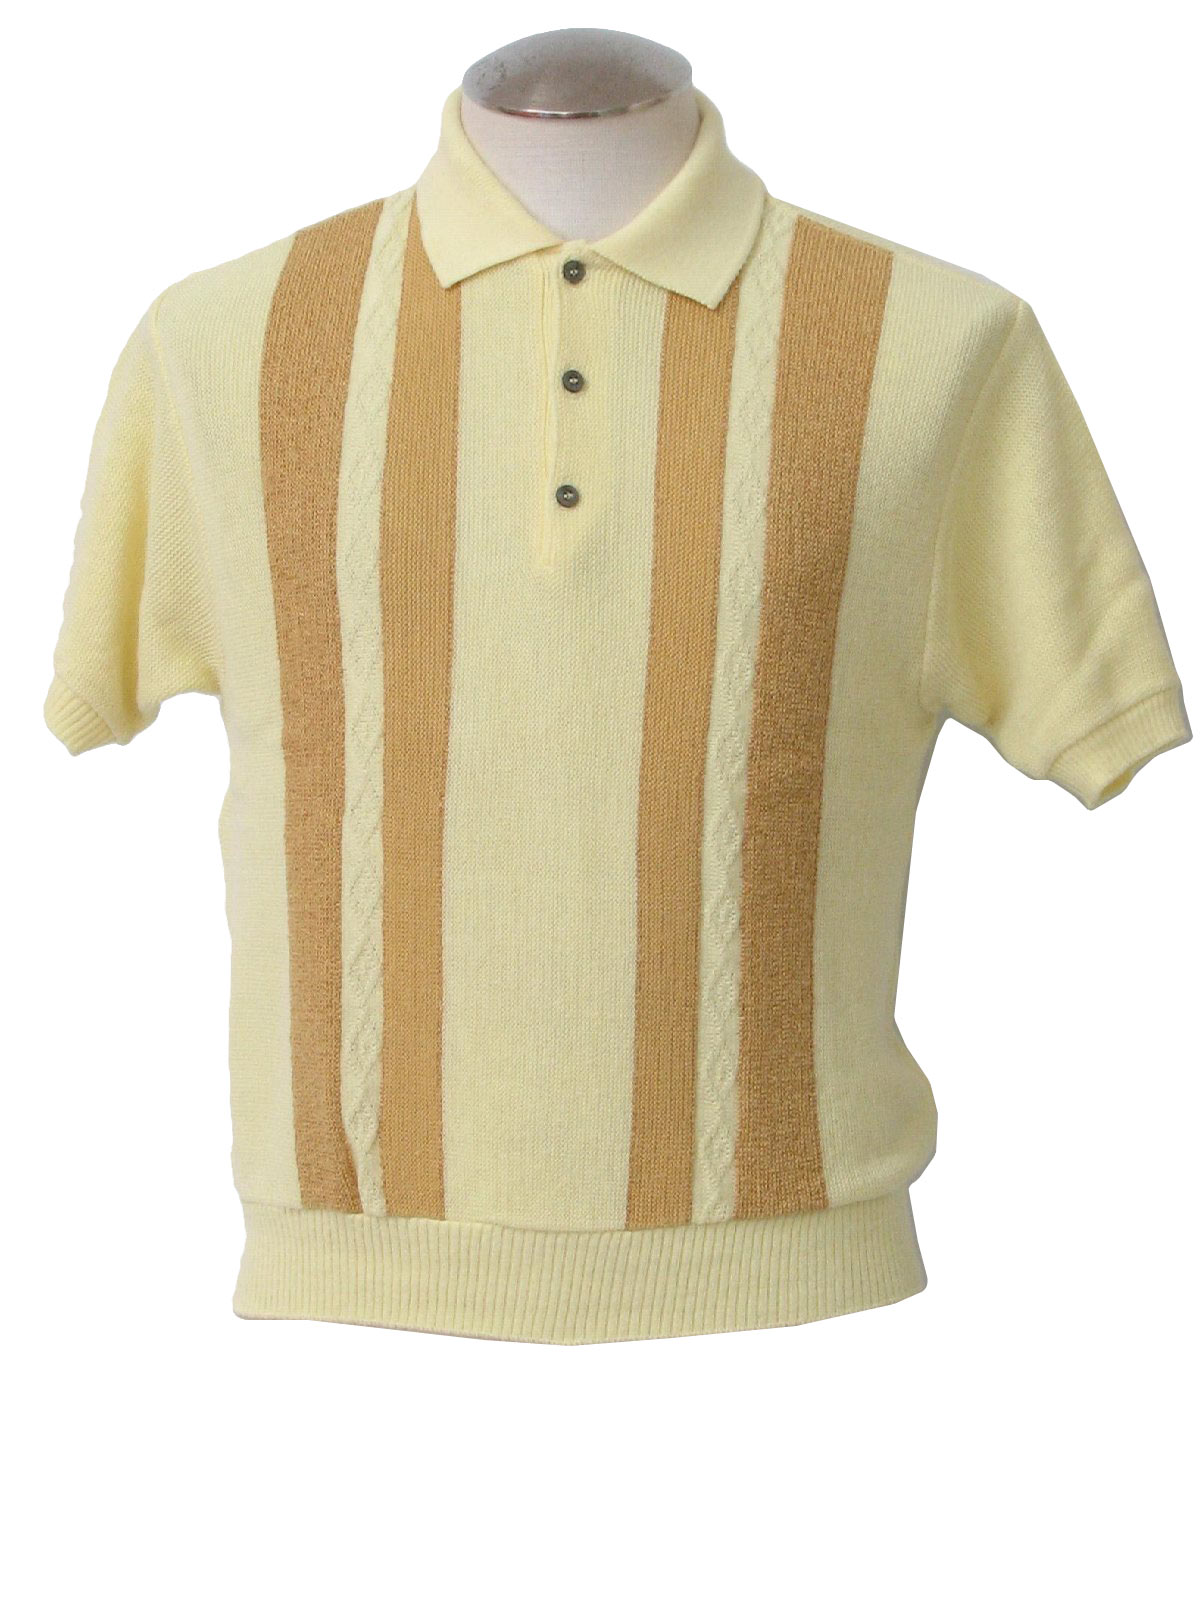 3a73b4f6 Vintage Sears 60's Knit Shirt: 60s -Sears- Mens soft yellow and ...